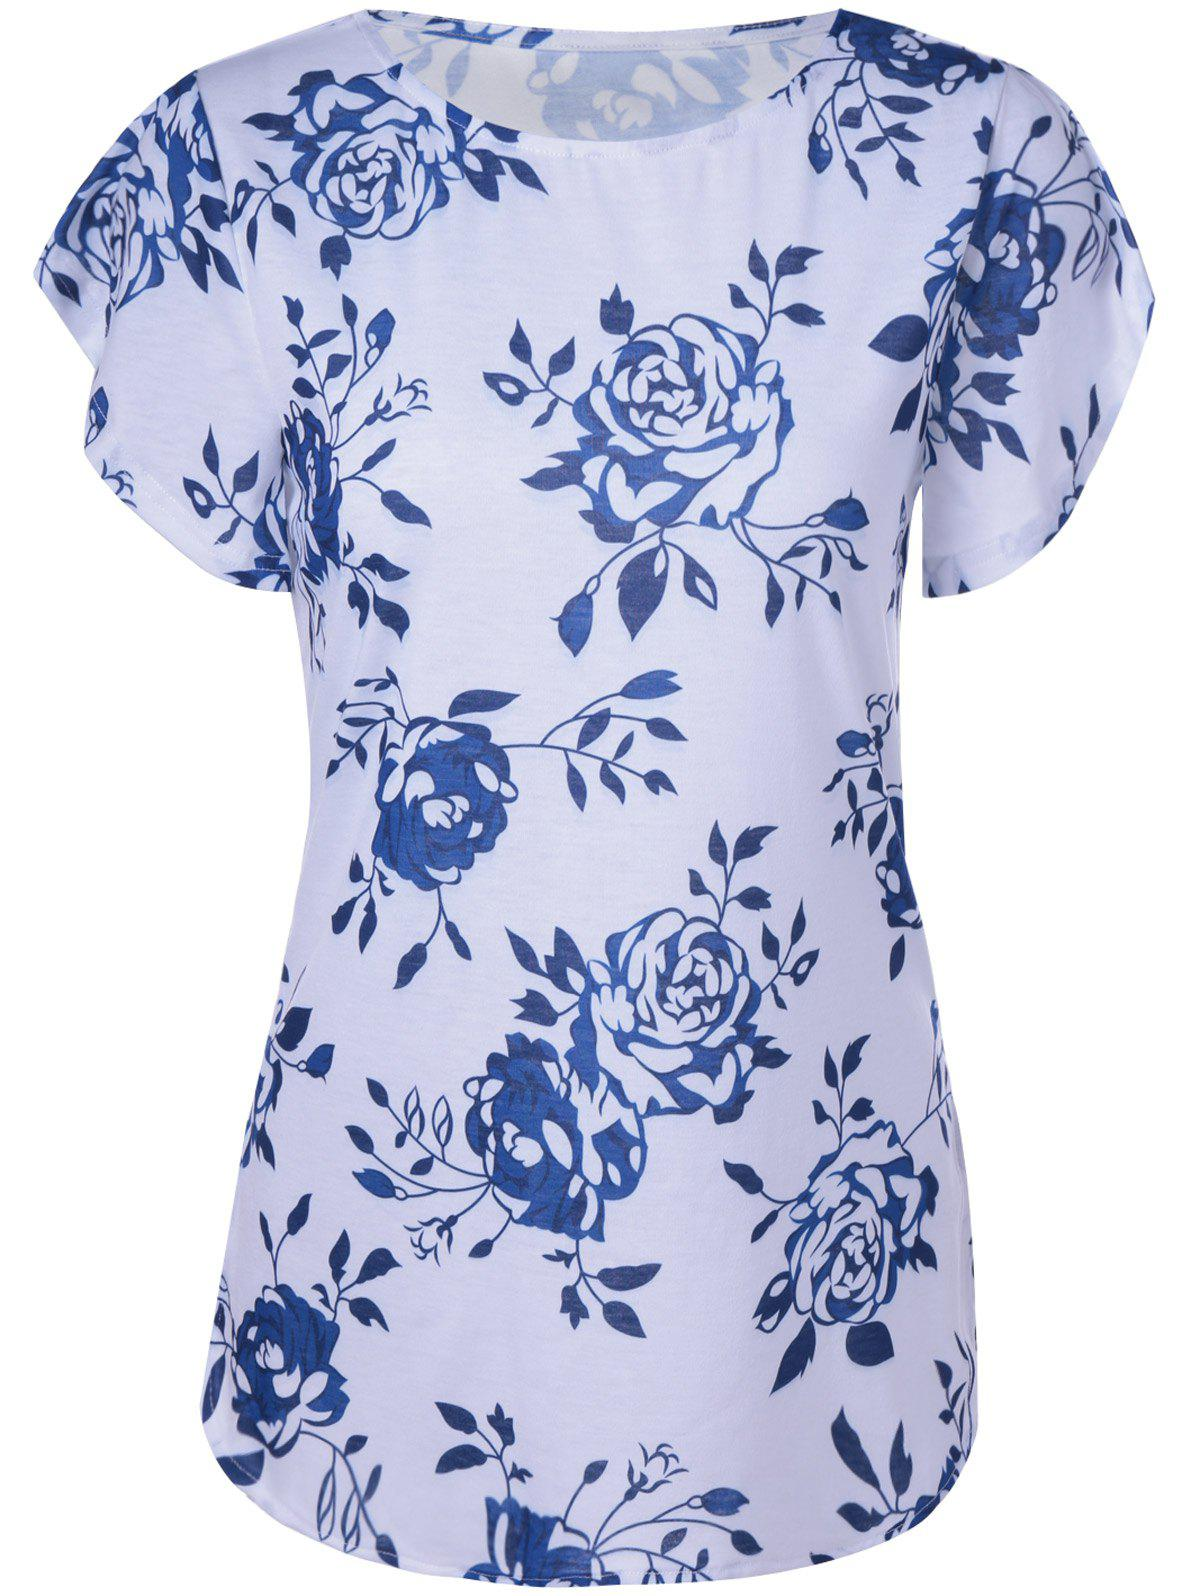 Fashionable Short Sleeves Round Collar Printing With T-Shirt For Women - BLUE/WHITE XL